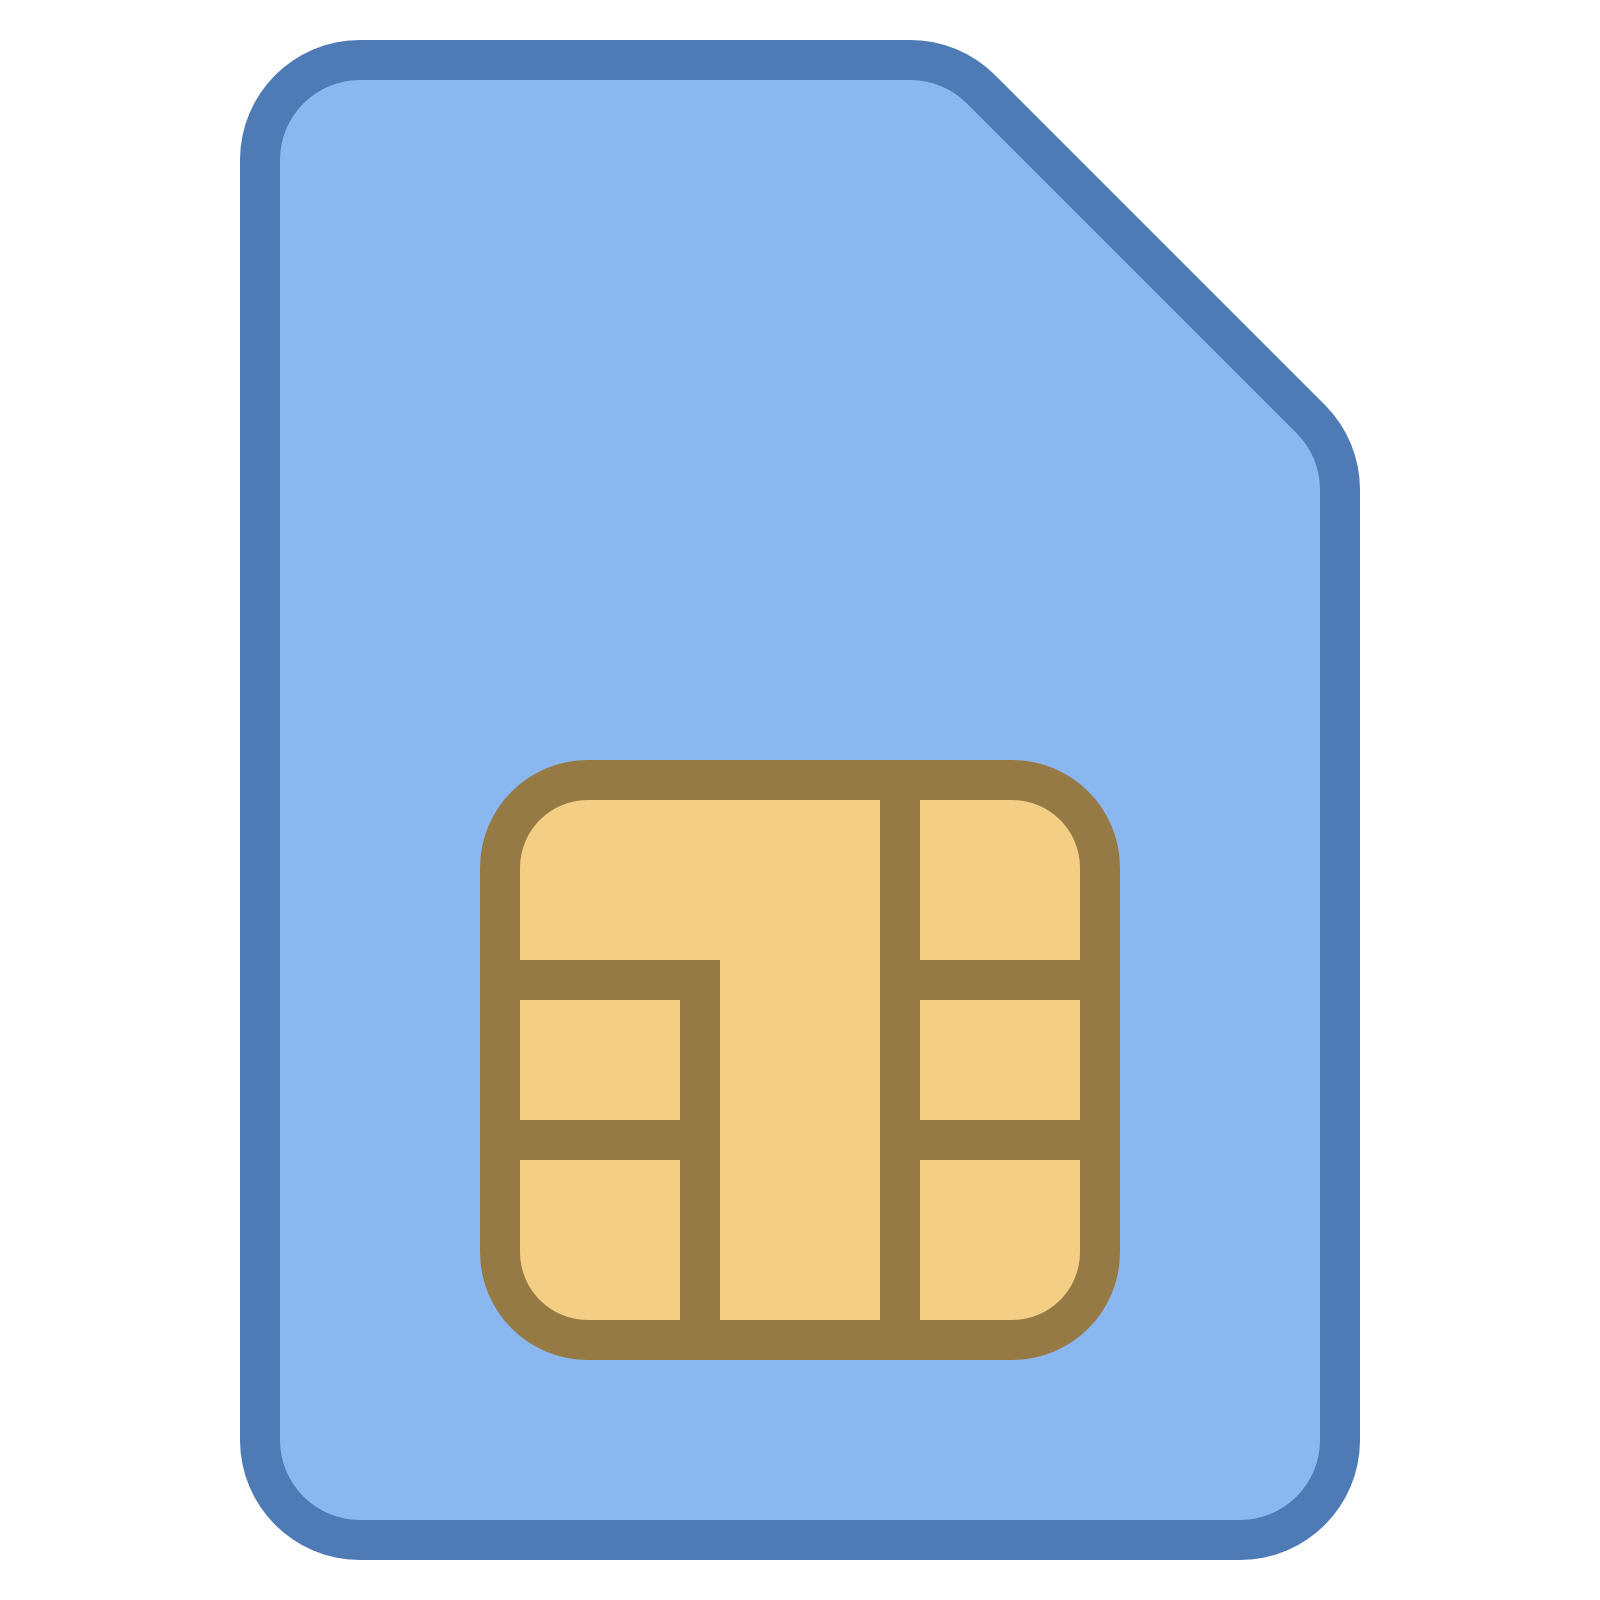 Sim card transparentpng . Phone clipart mobile icon